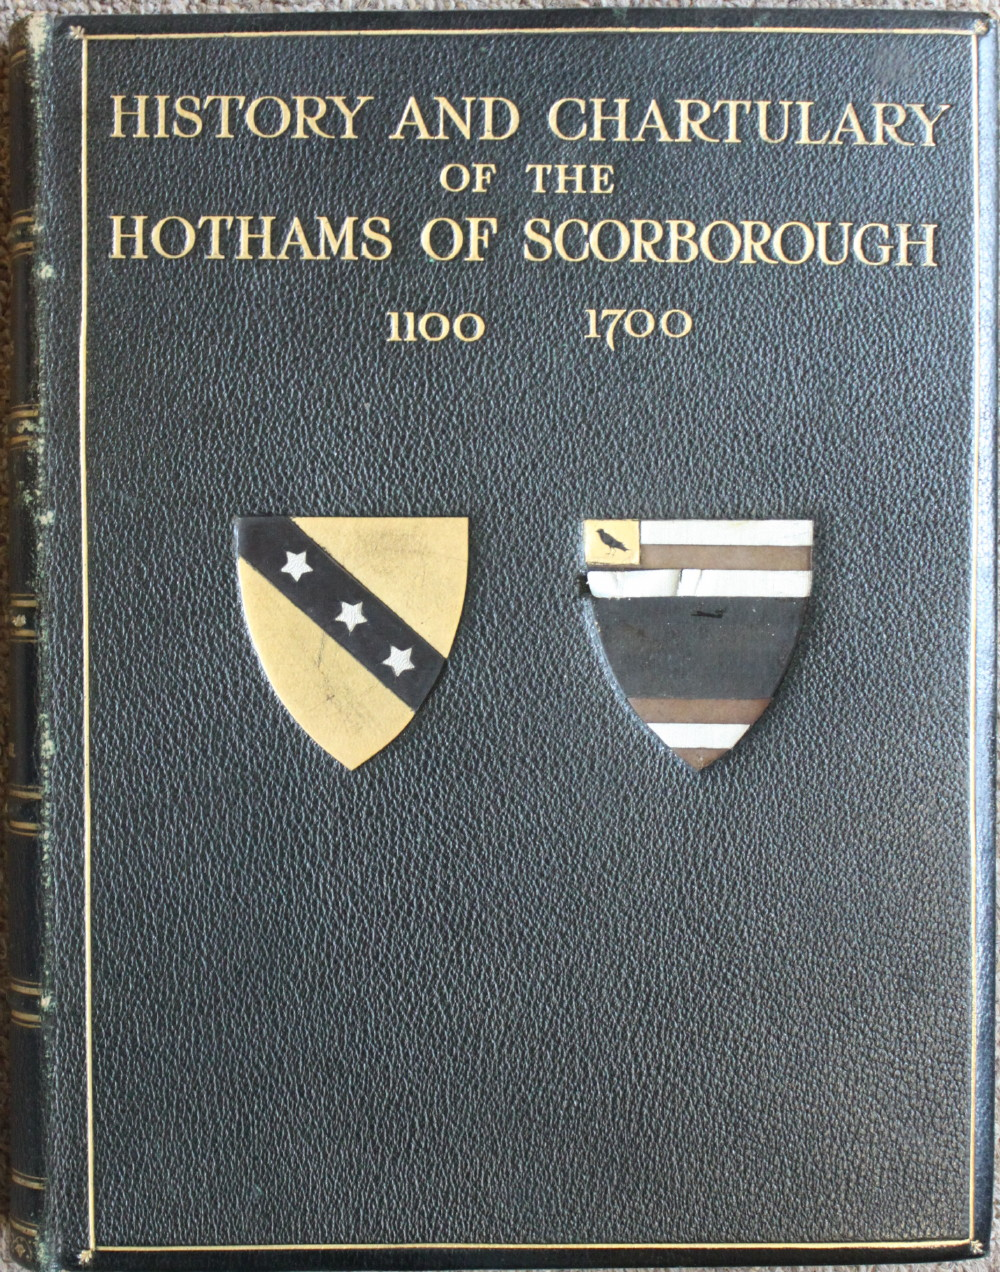 Image for History and Chartulary of the Hothams of Scorborough in the East Riding of Yorkshire 1100 - 1700.